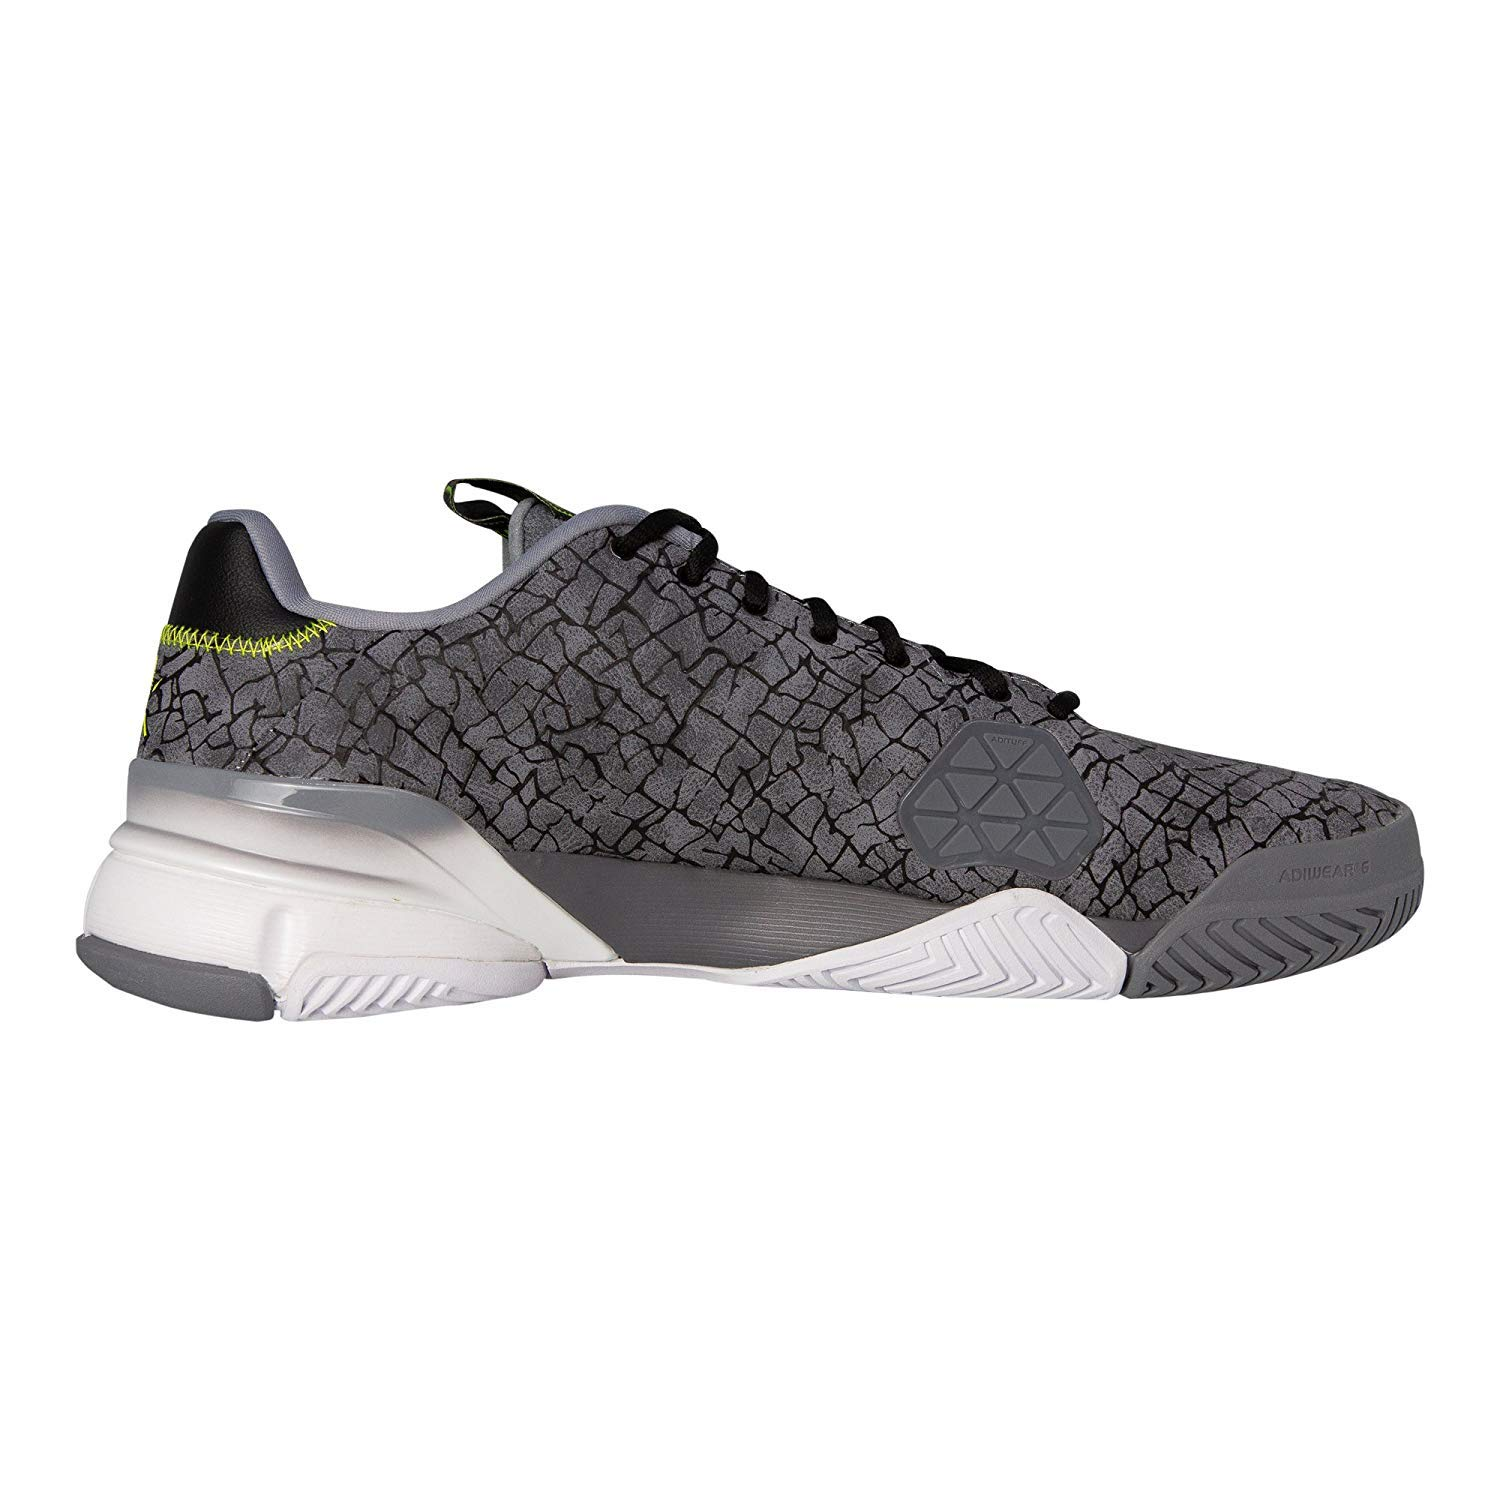 huge selection of acc9b 79071 Amazon.com   adidas Men s Barricade 2016 Boost Tennis Shoes, Grey Hannibal, 13.5  D(M) US   Tennis   Racquet Sports